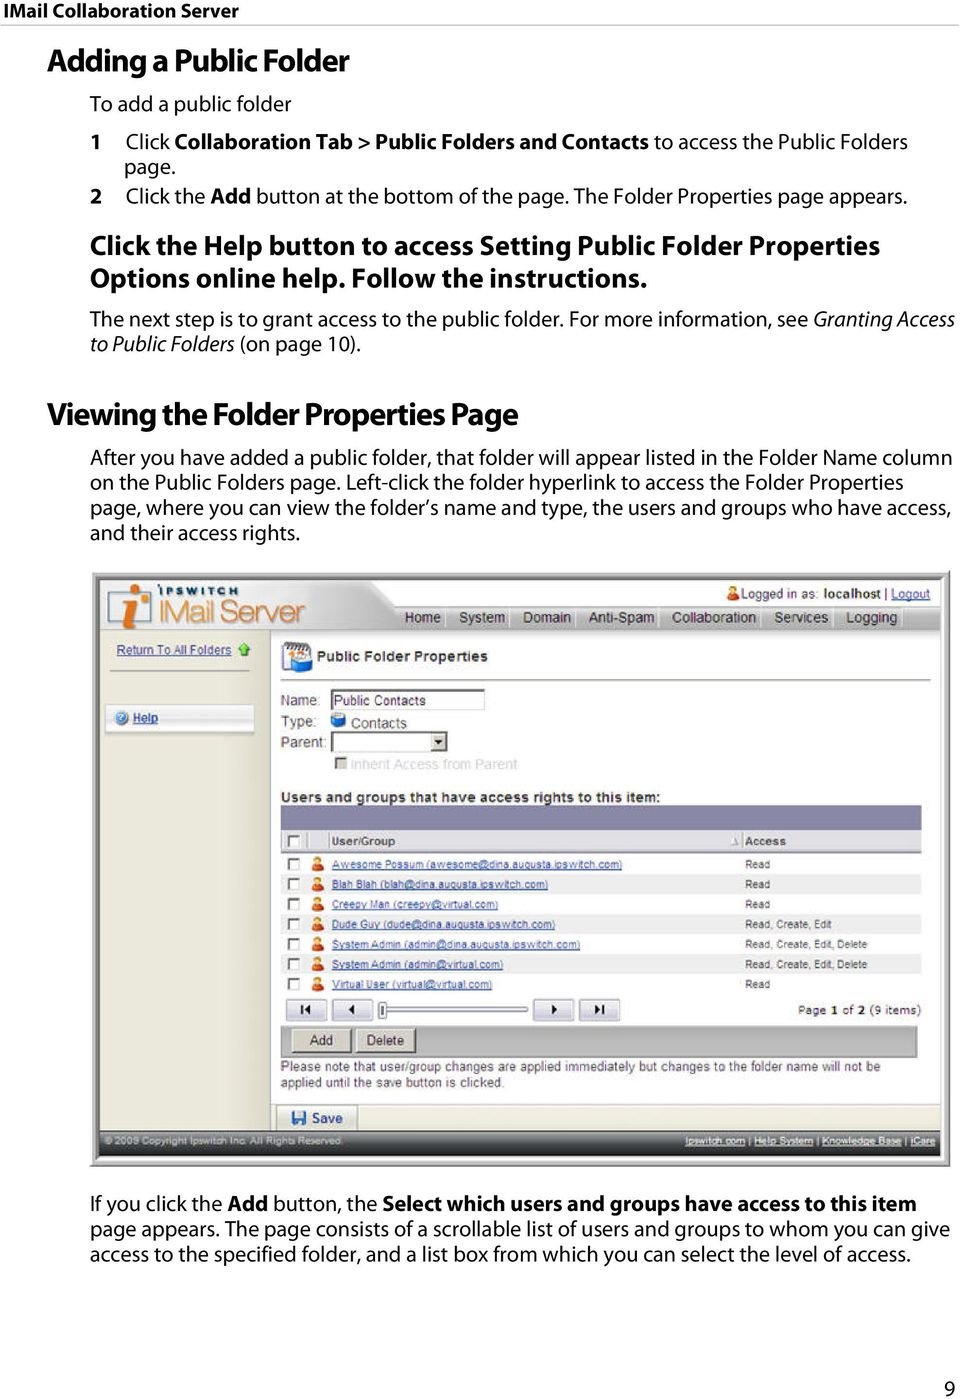 The next step is to grant access to the public folder. For more information, see Granting Access to Public Folders (on page 10).